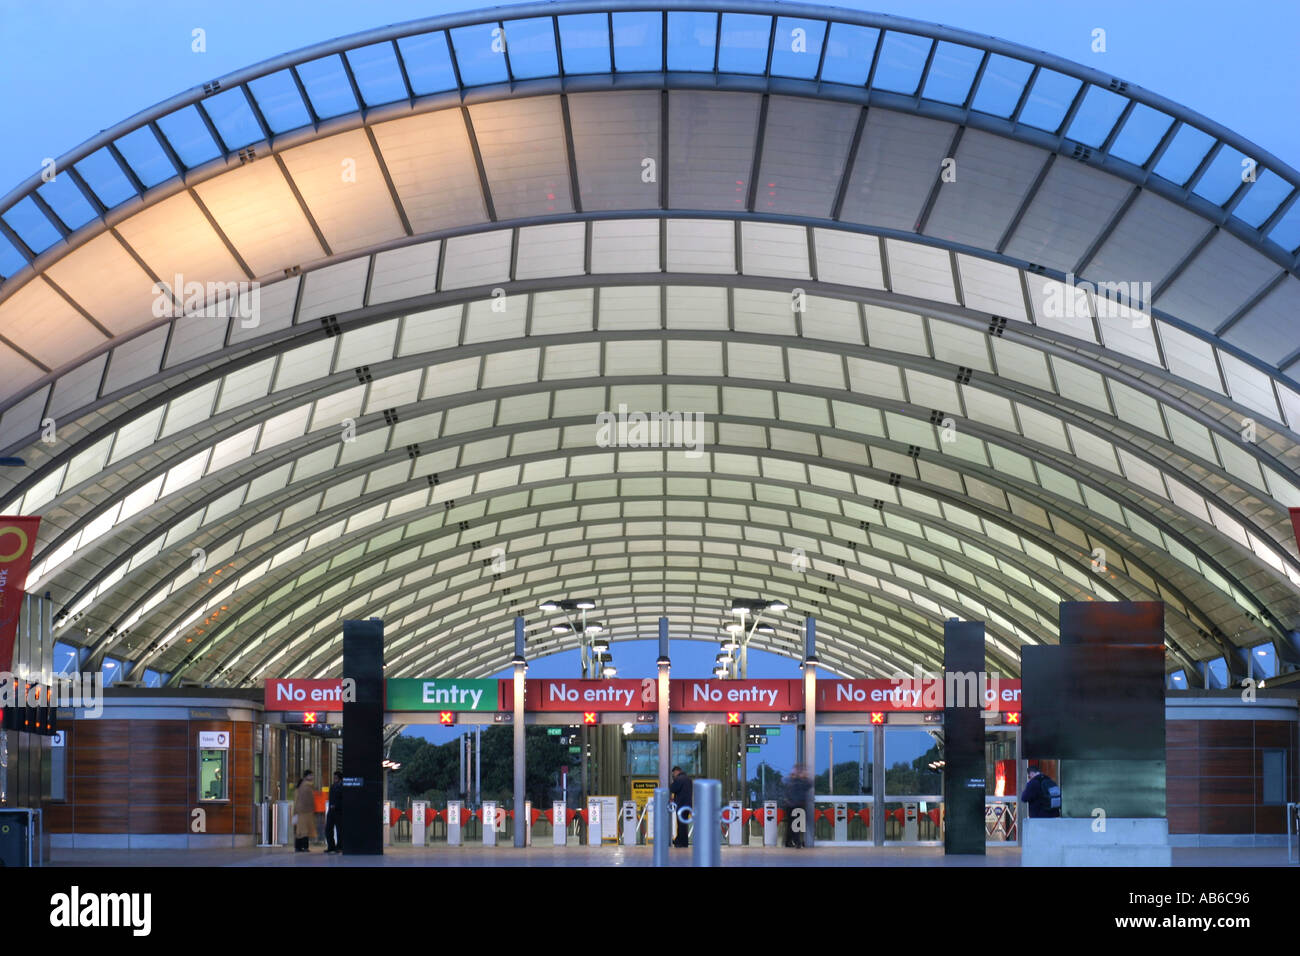 Sydney Olympic Park Train Station At Dusk Stock Photo Royalty